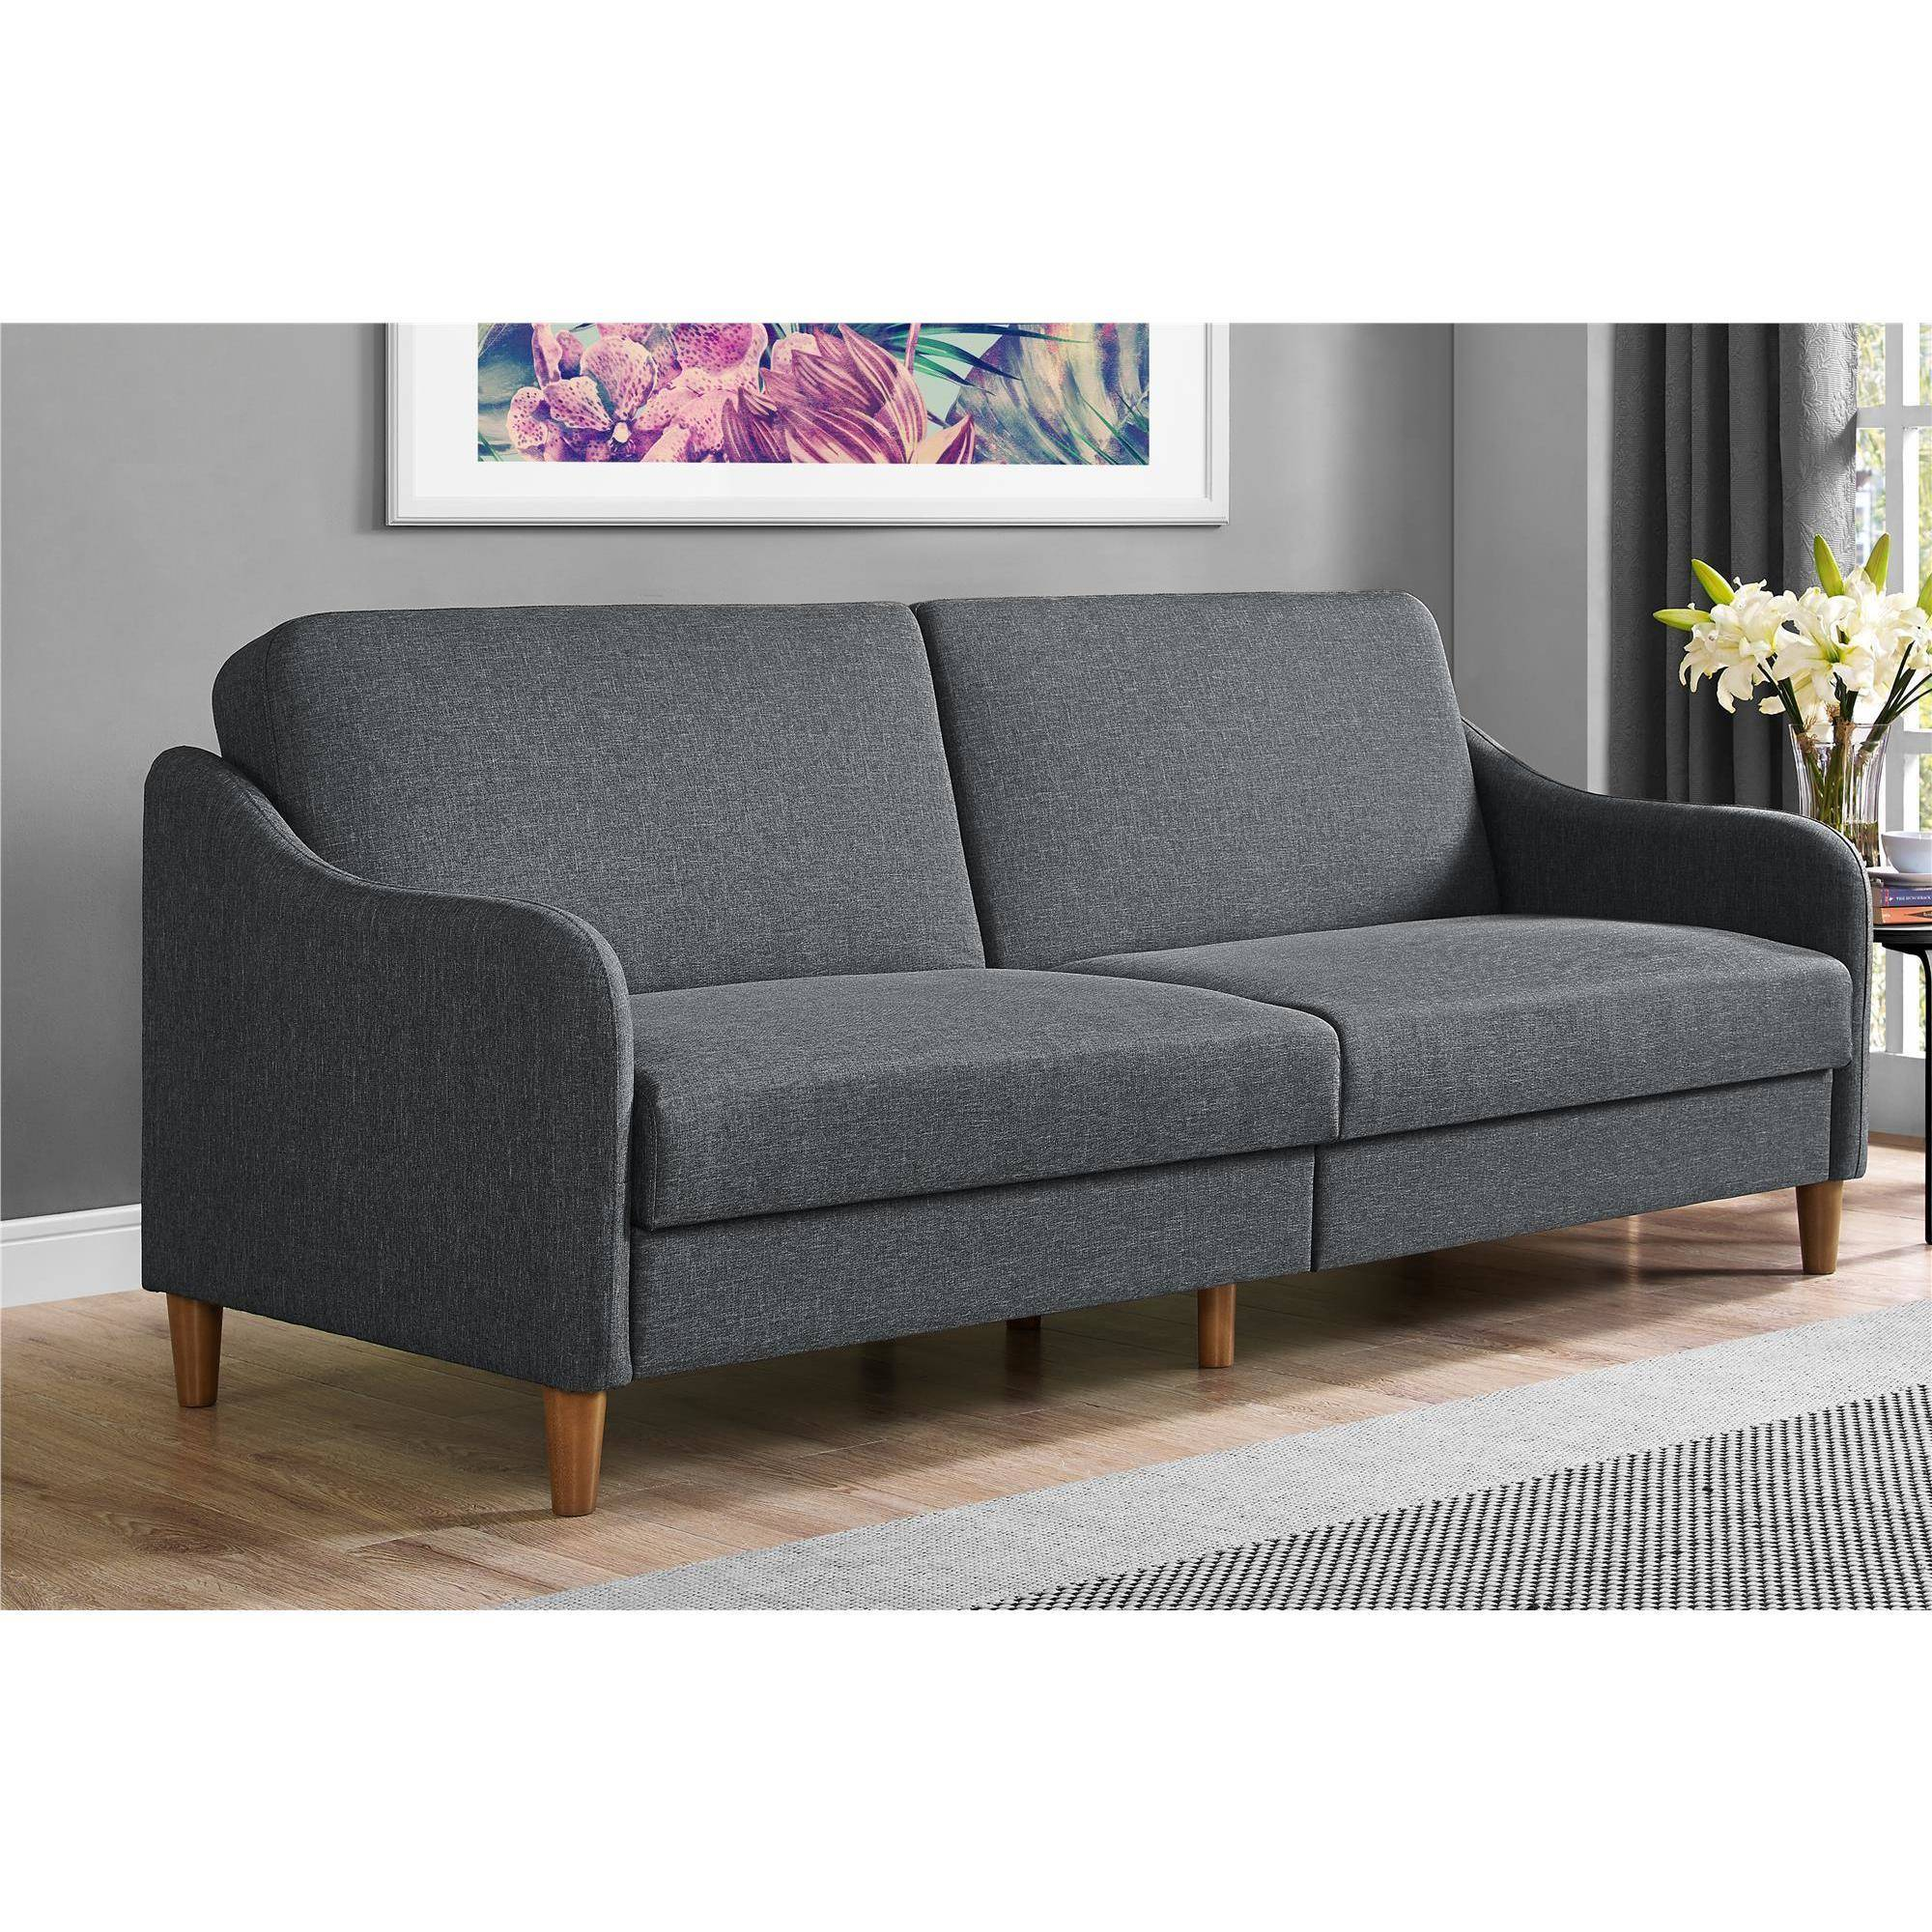 Convertible Sofa Sleeper Futon Upholstery Full Couch Contemporary ...